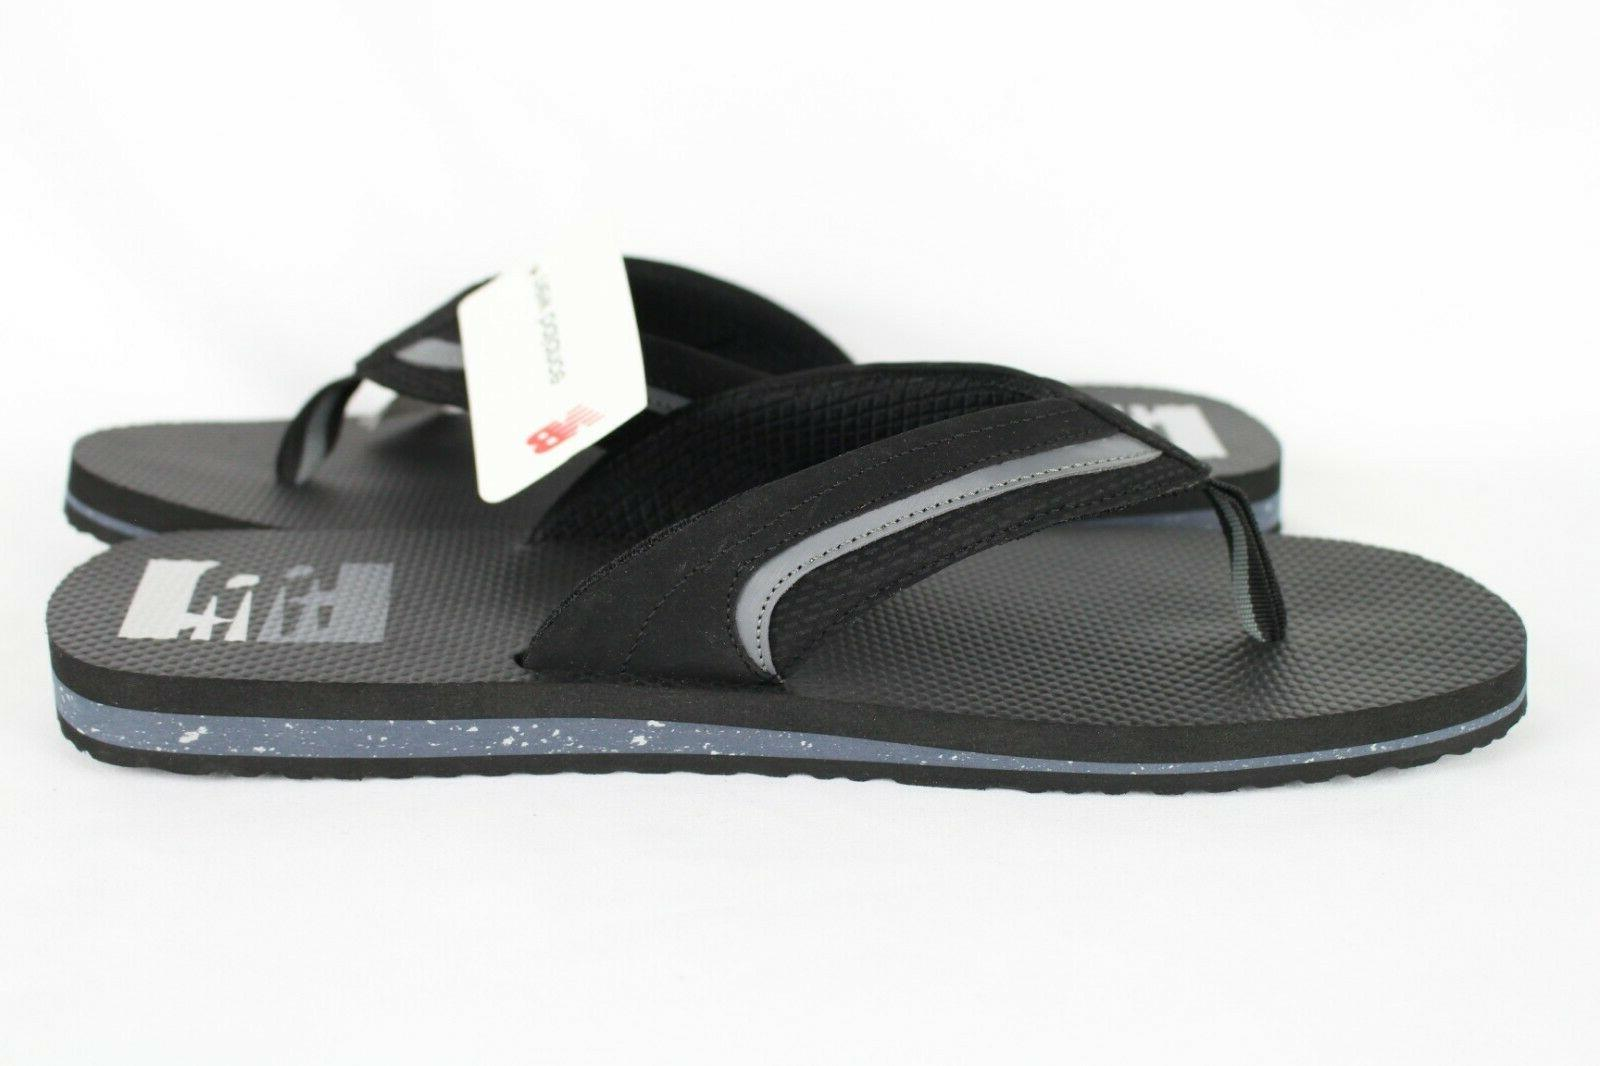 New Balance Brighton Thong Flip Flop Sandals